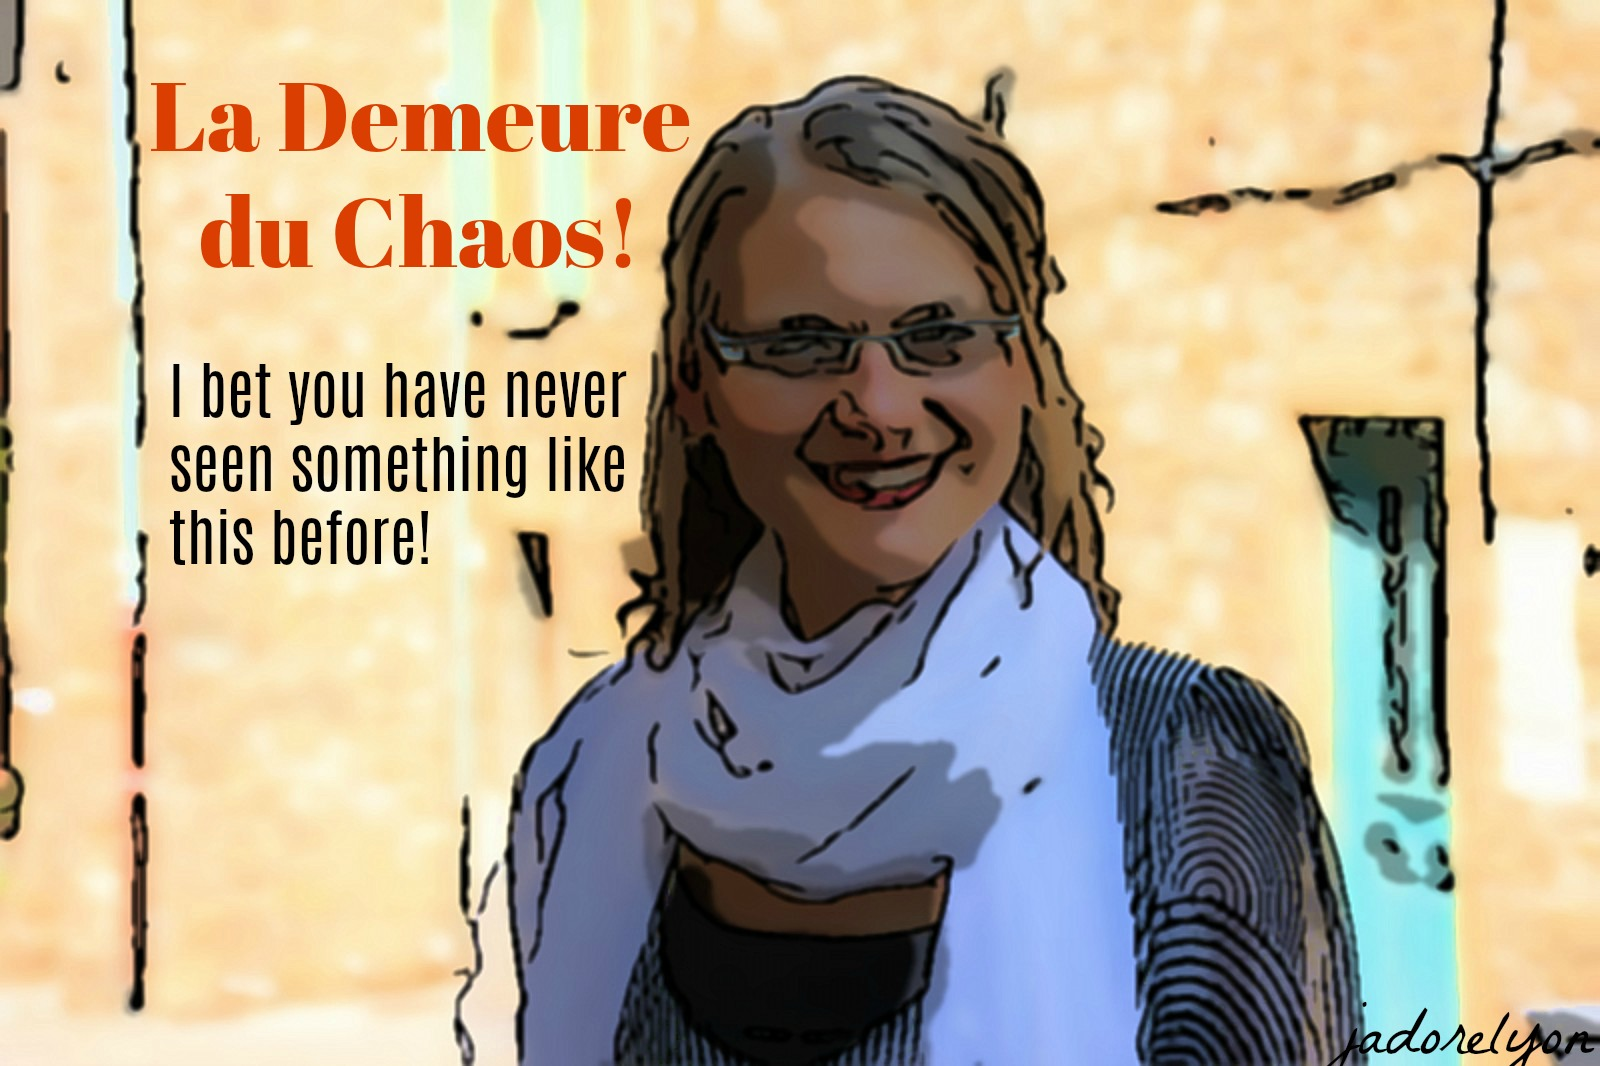 La Demeure du Chaos! I bet you have never seen something like this before!